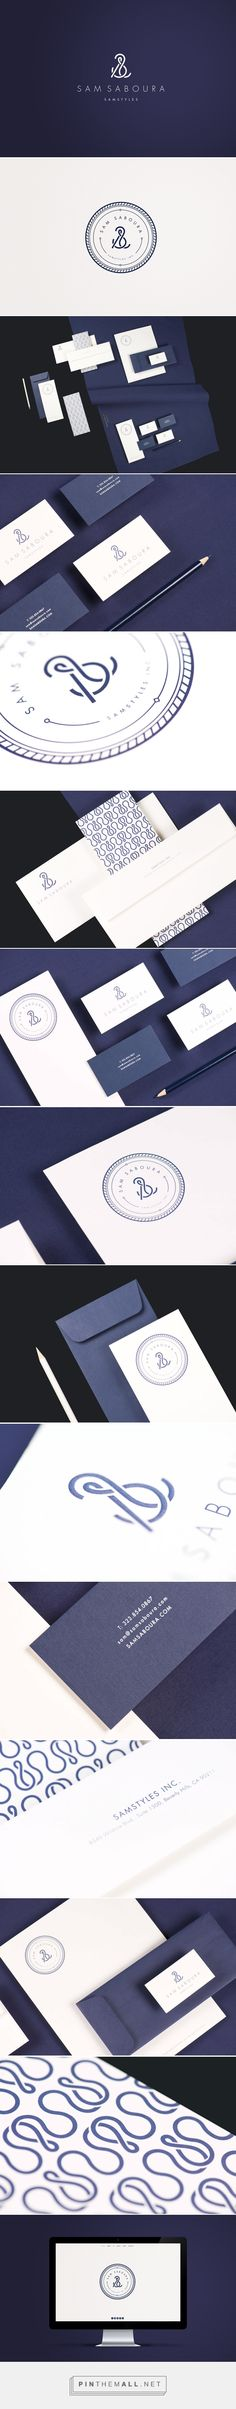 Sam Saboura on Behance. - a grouped images picture - Pin…品牌 标志 Design Typo, Brand Identity Design, Graphic Design Branding, Corporate Design, Corporate Identity, Business Branding, Visual Identity, Business Card Design, Logo Branding